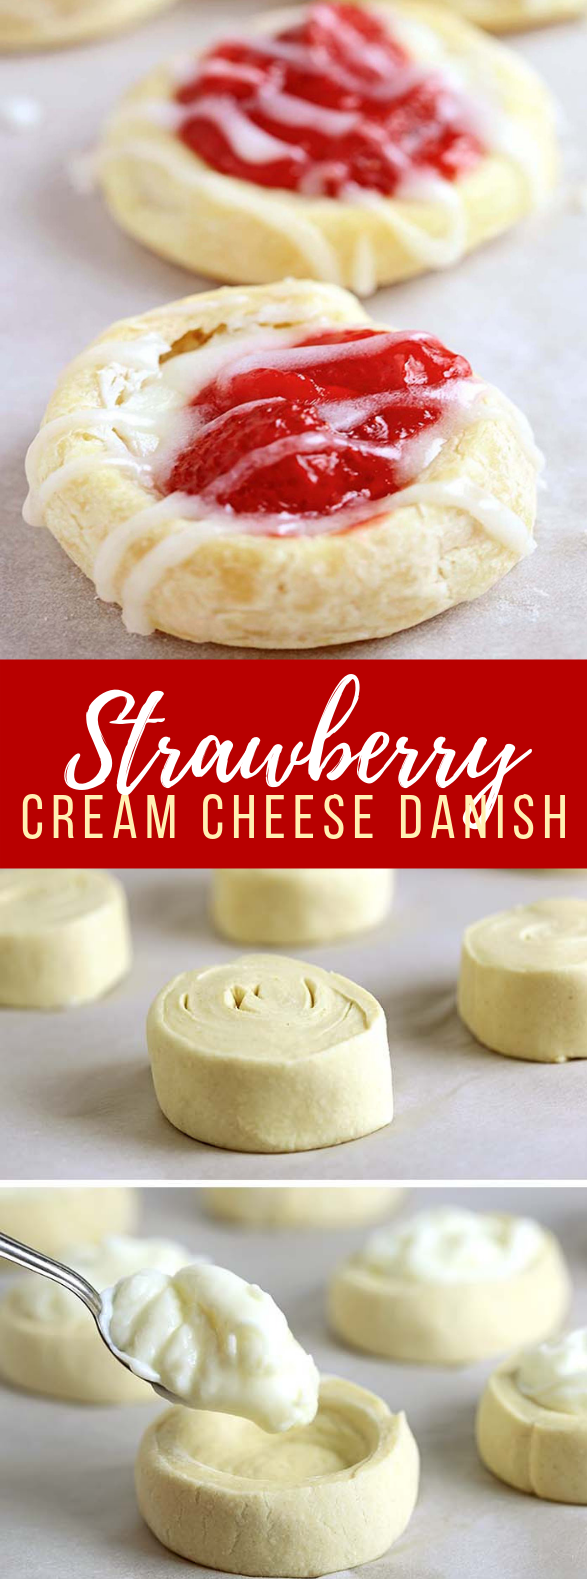 Strawberry Cream Cheese Danish #desserts #cake